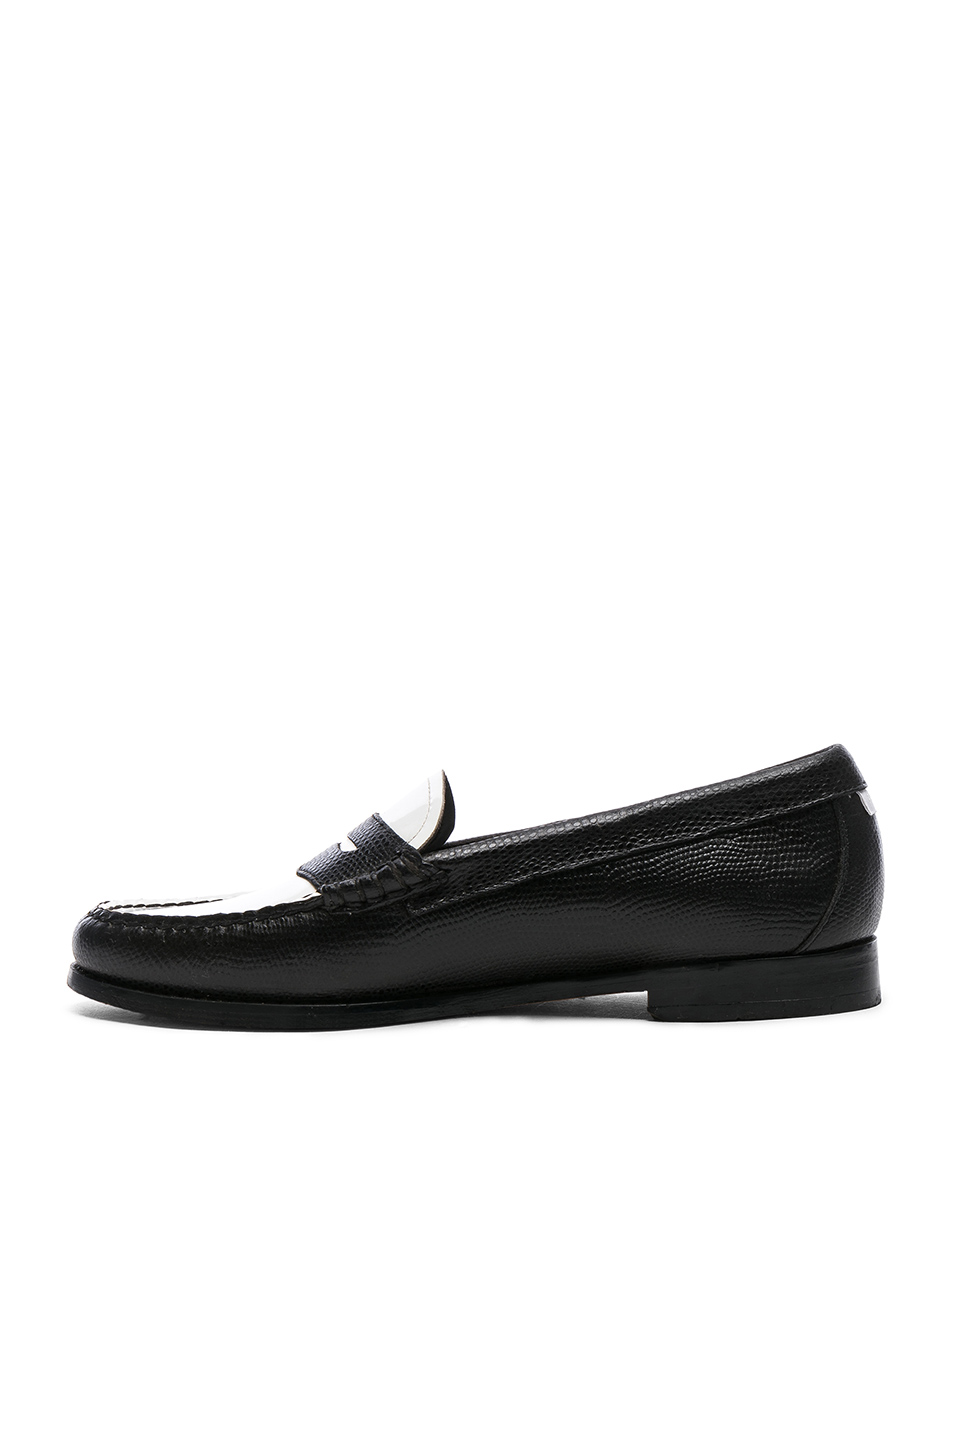 a6fcccdf313 Buy Original RE DONE x G.H. Bass   Co. Whitney Loafer at Indonesia ...